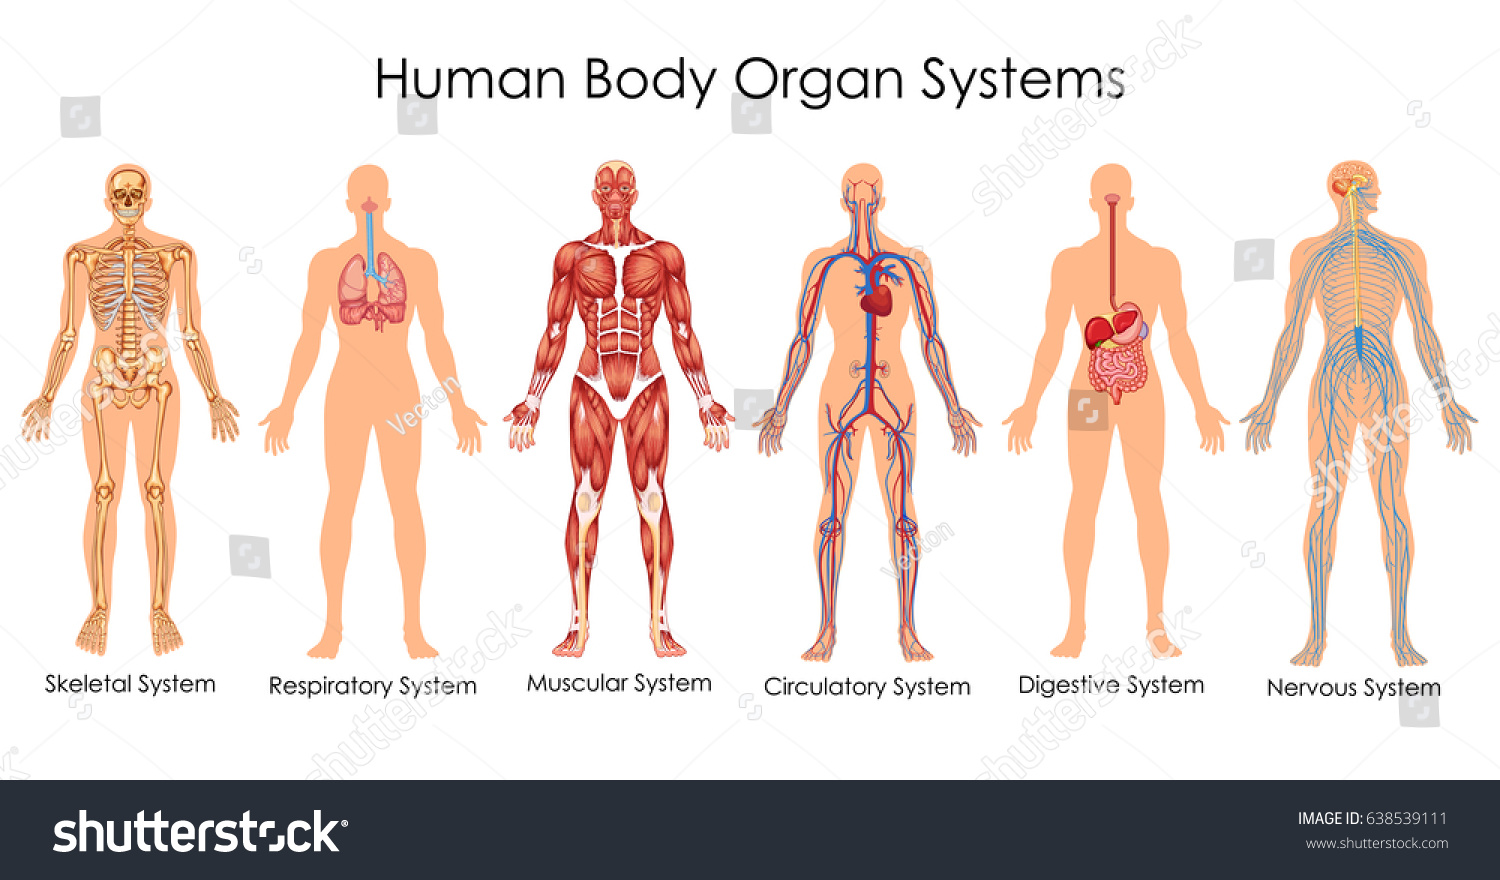 Medical education chart biology human body em vetor stock 638539111 medical education chart of biology for human body organ system diagram vector illustration ccuart Gallery